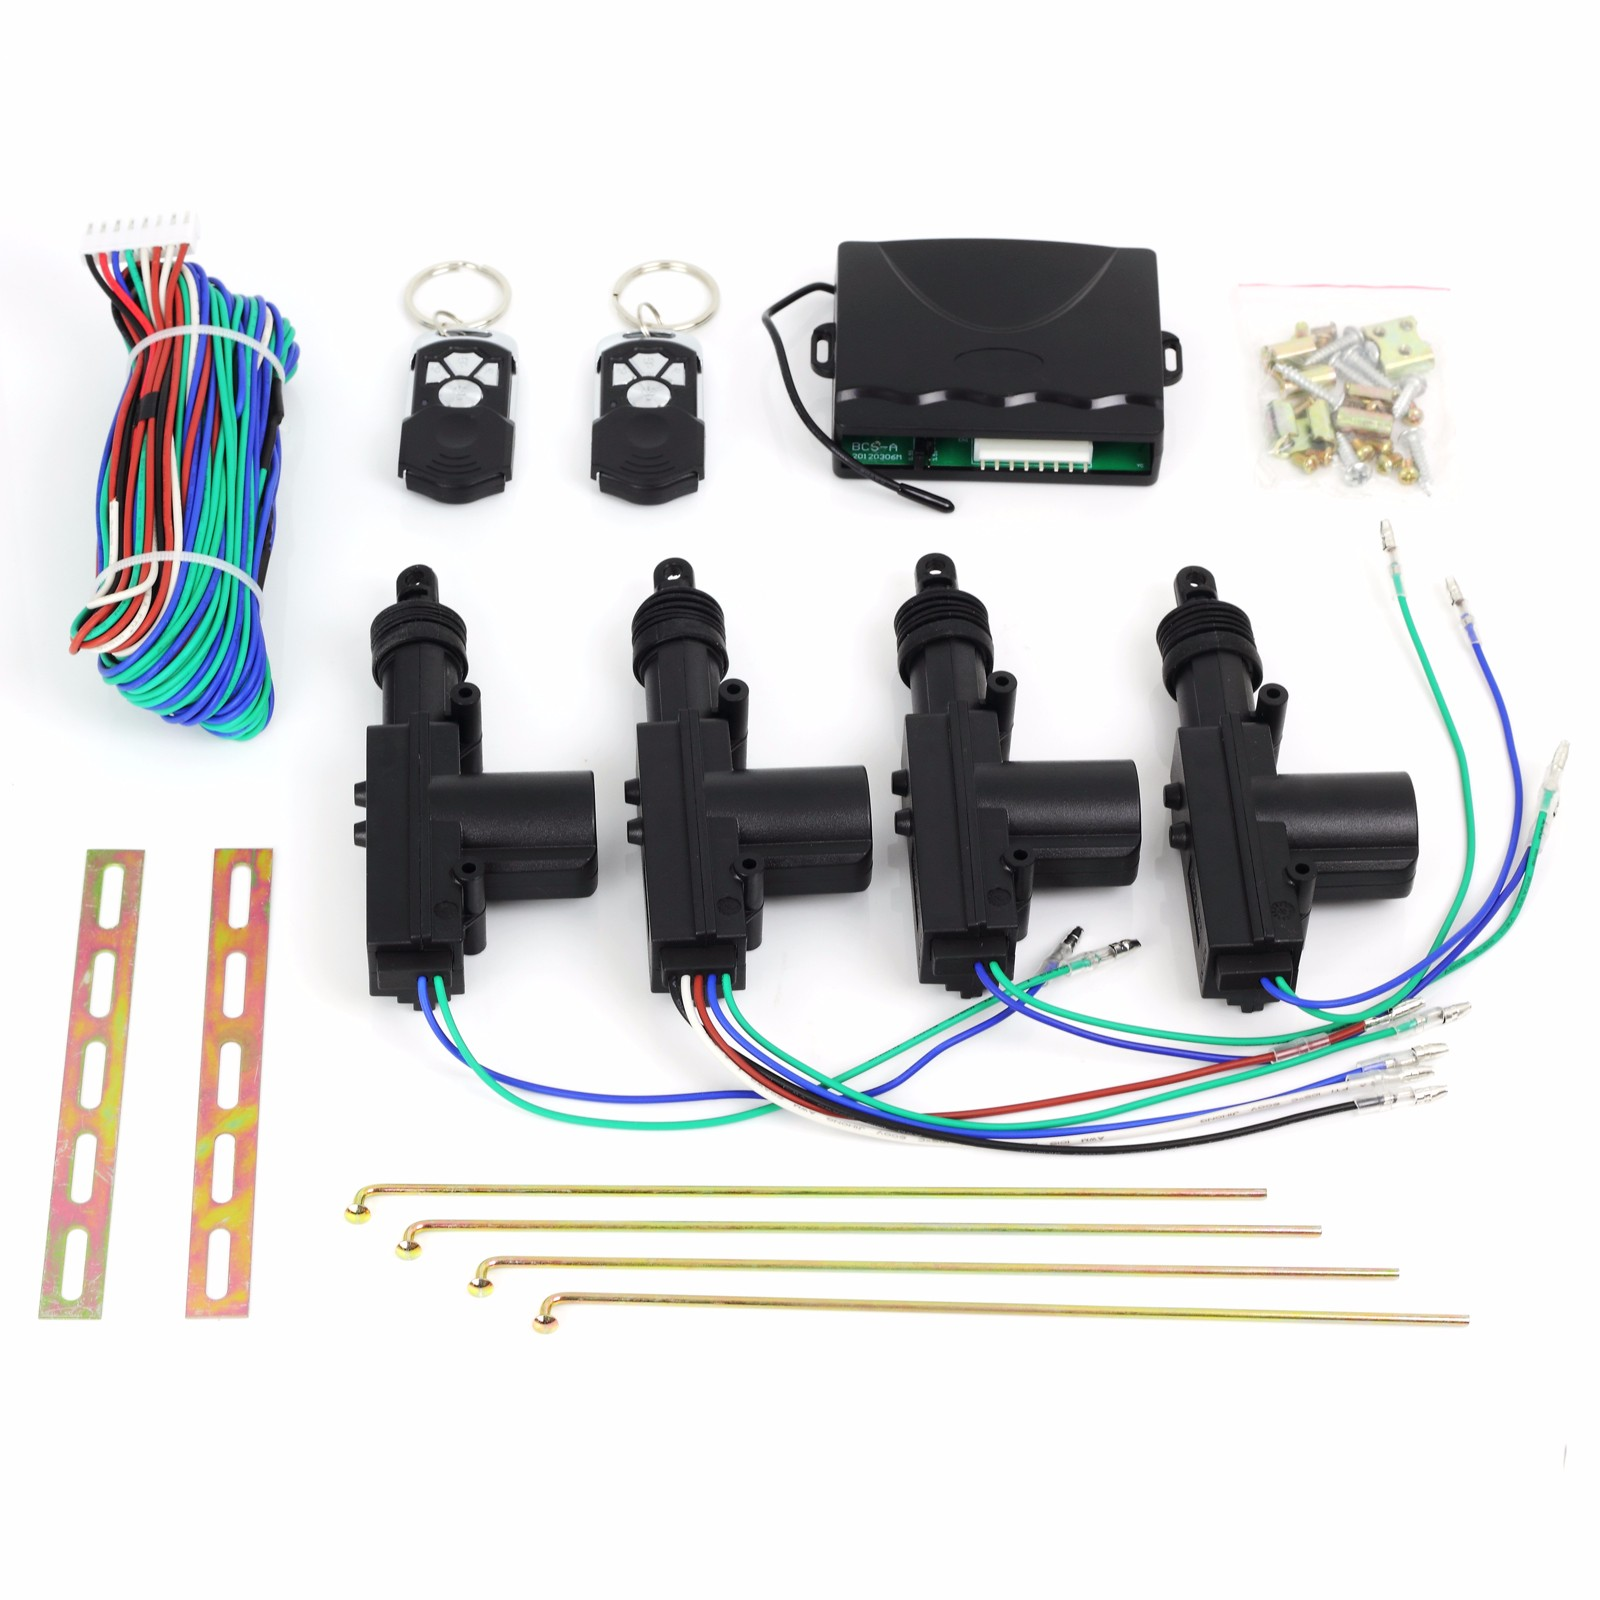 ESYNIC Universal 12V Remote Car Central 4 Door Locking Unlock System with 2 Remote Contral Keyless Entry Kit